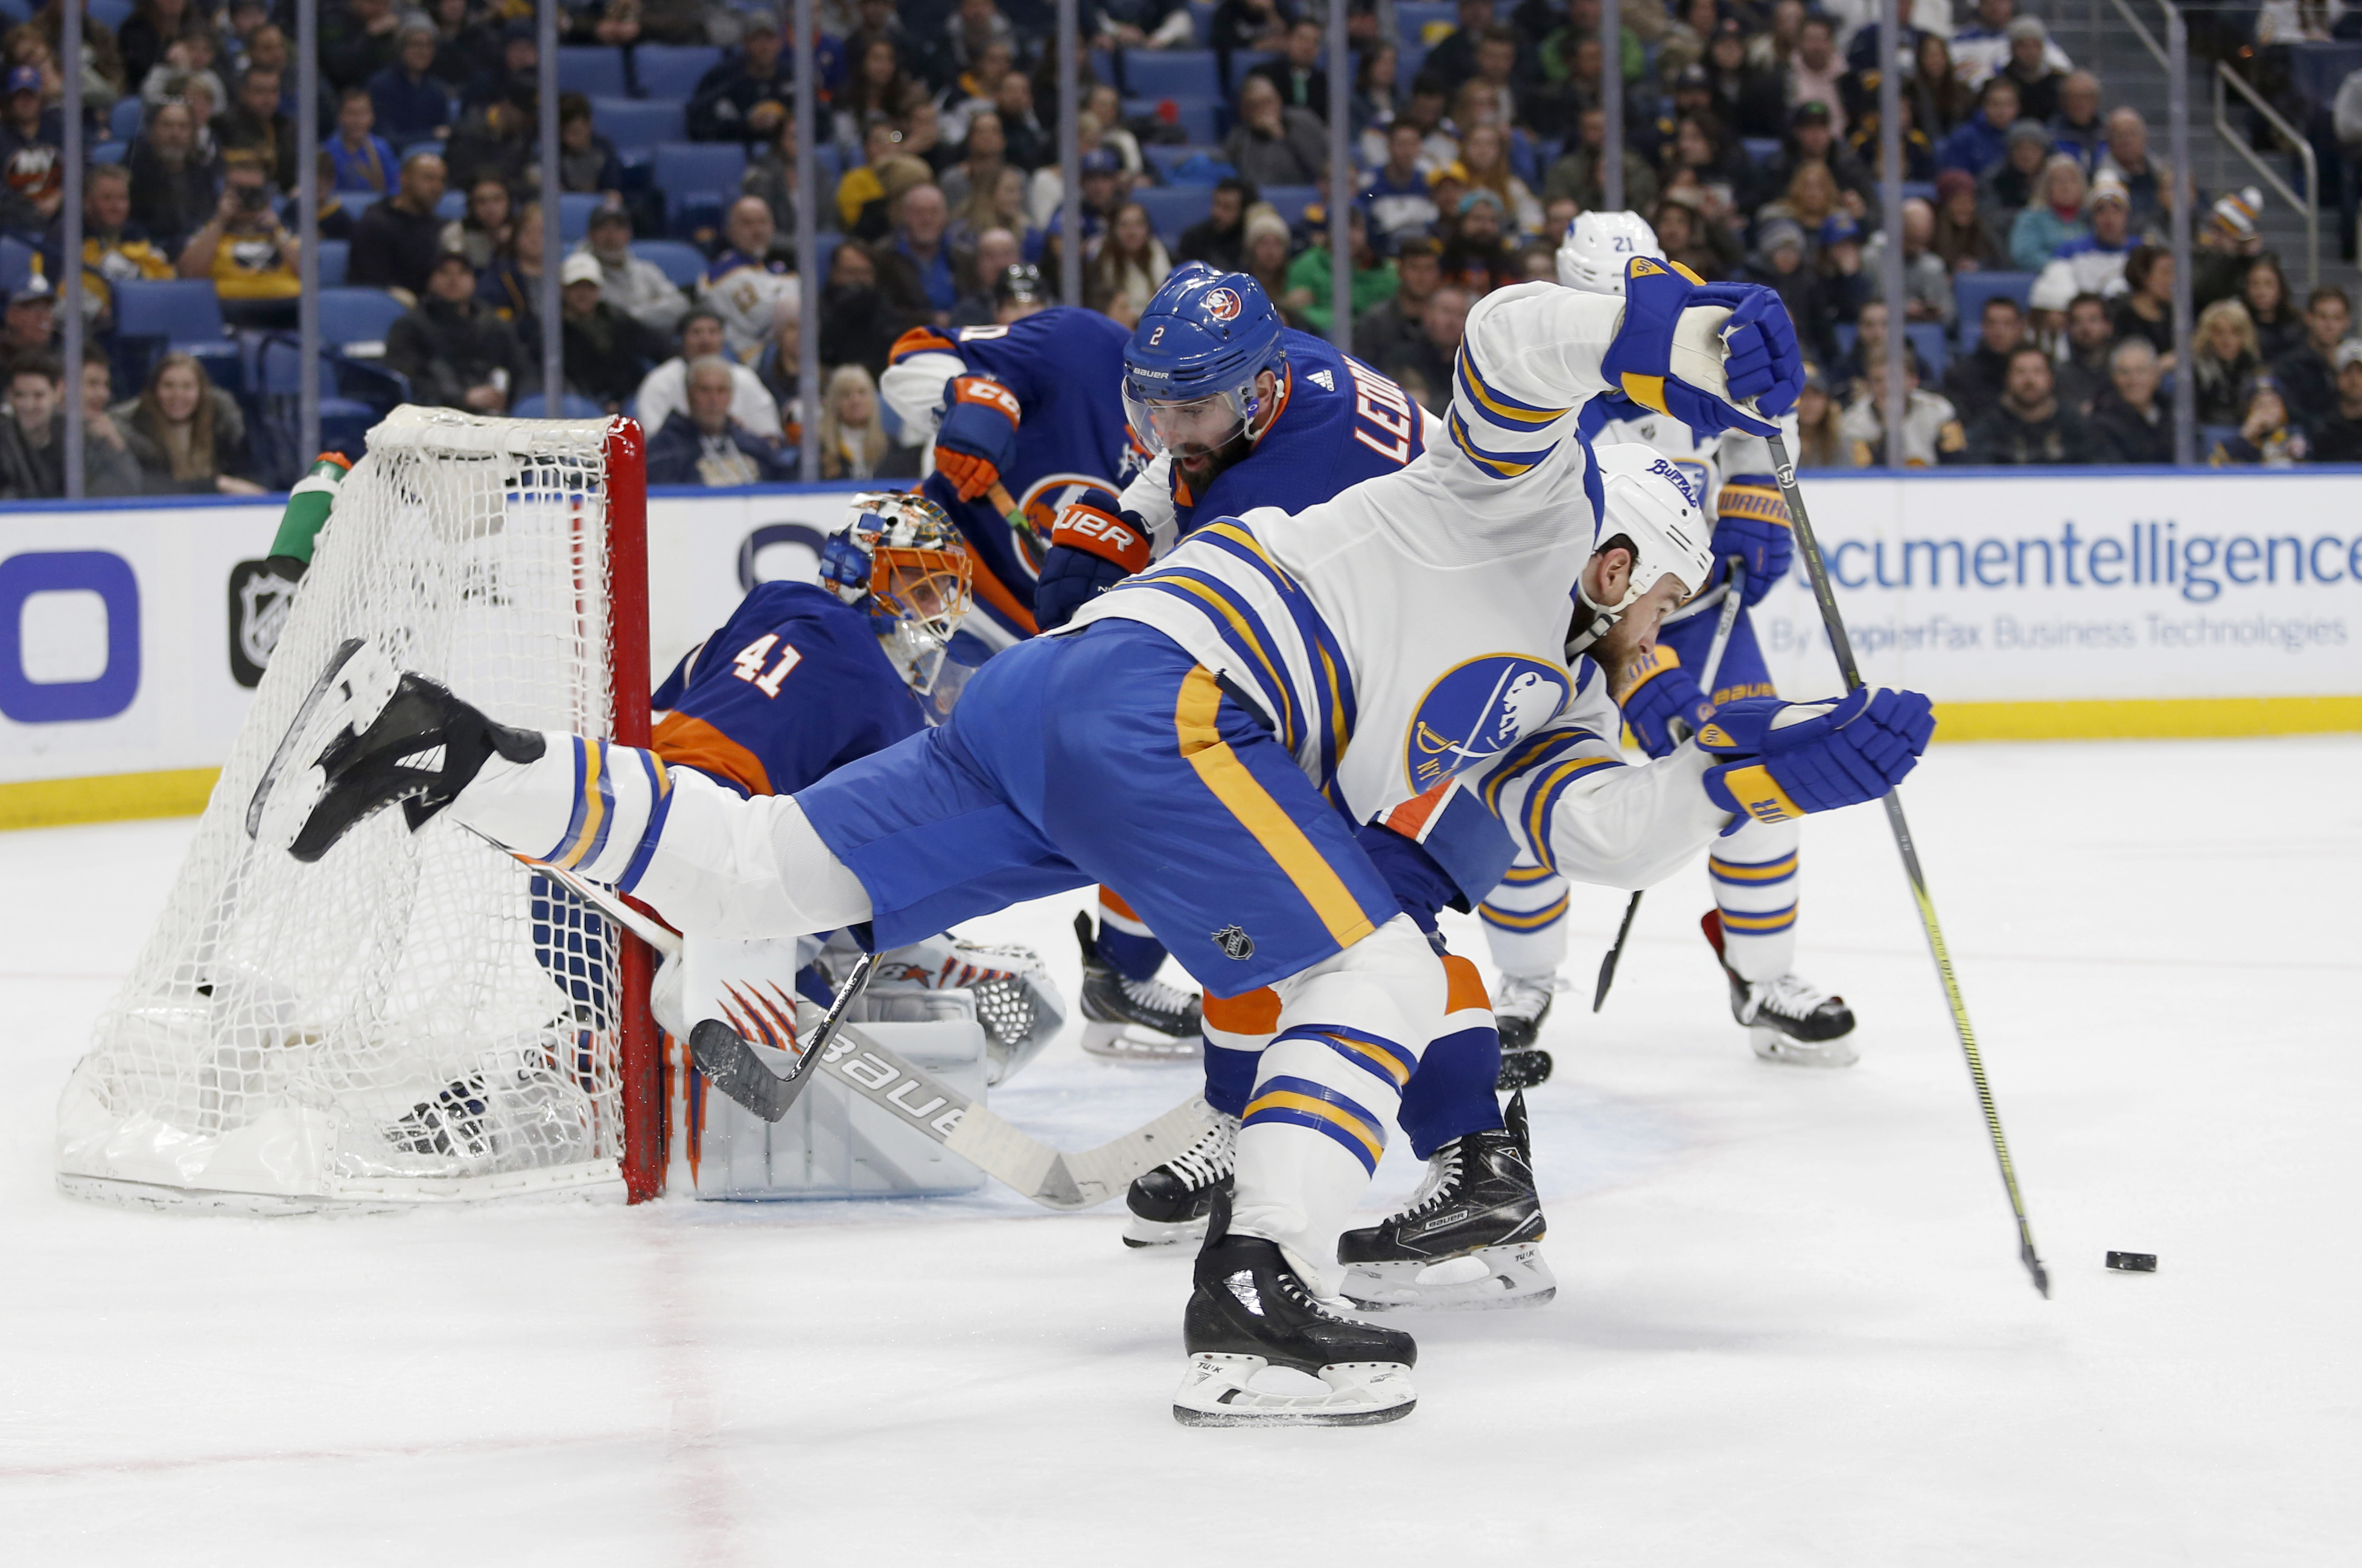 Feb 8, 2018; Buffalo, NY, USA; Buffalo Sabres center Ryan O'Reilly (90) dives to take a shot on goal during the second period against the New York Islanders at KeyBank Center. Mandatory Credit: Timothy T. Ludwig-USA TODAY Sports